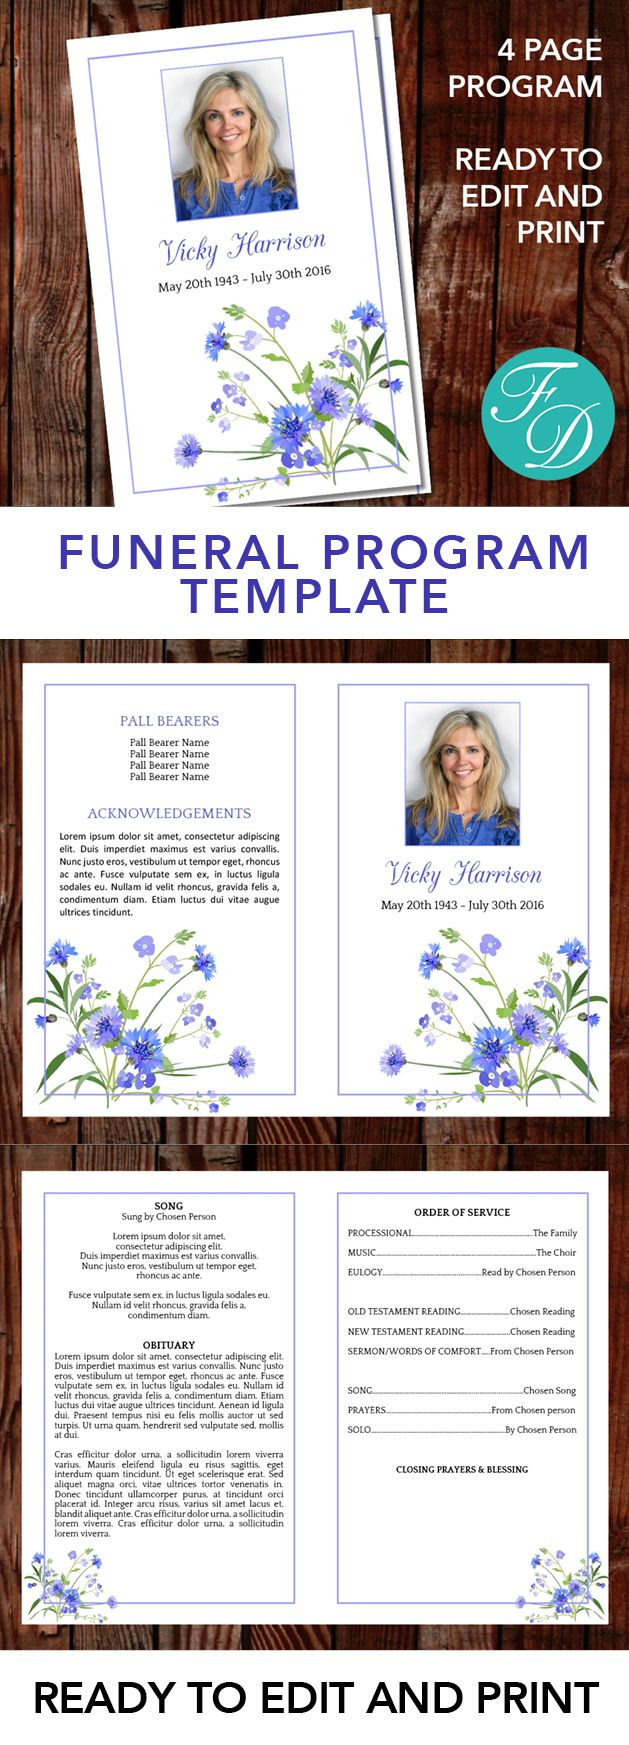 Blue Floral Printable Funeral program ready to edit & print Simply purchase your funeral templates, download, edit with Microsoft Word and print. #obituarytemplate #memorialprogram #funeralprograms #funeraltemplate #printableprogram #celebrationoflife